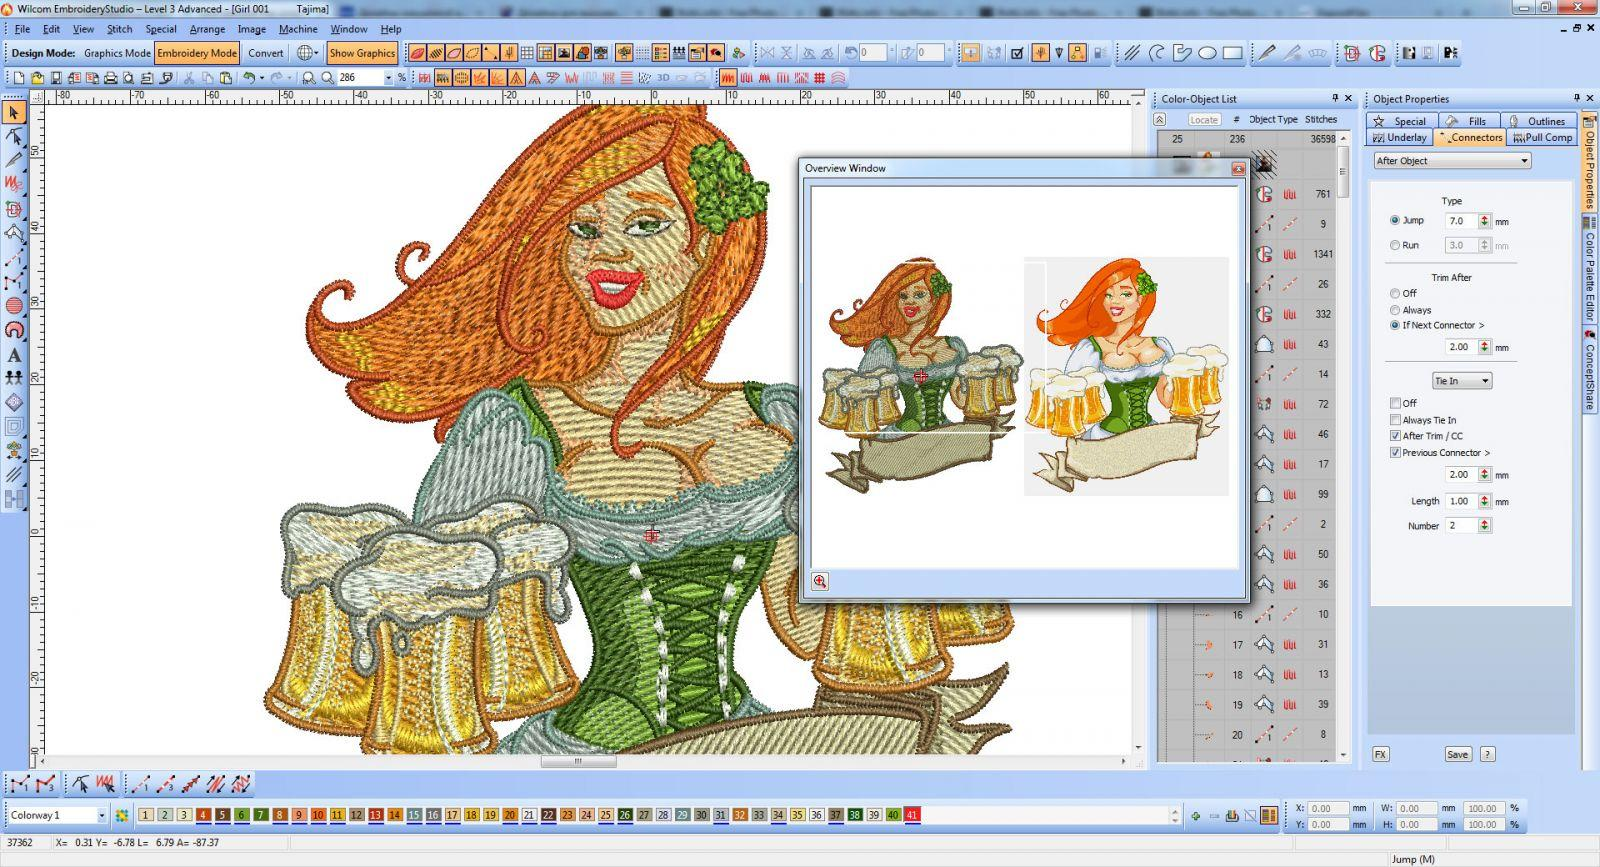 Beer Girl embroidery design at Wilcom  - screen shot